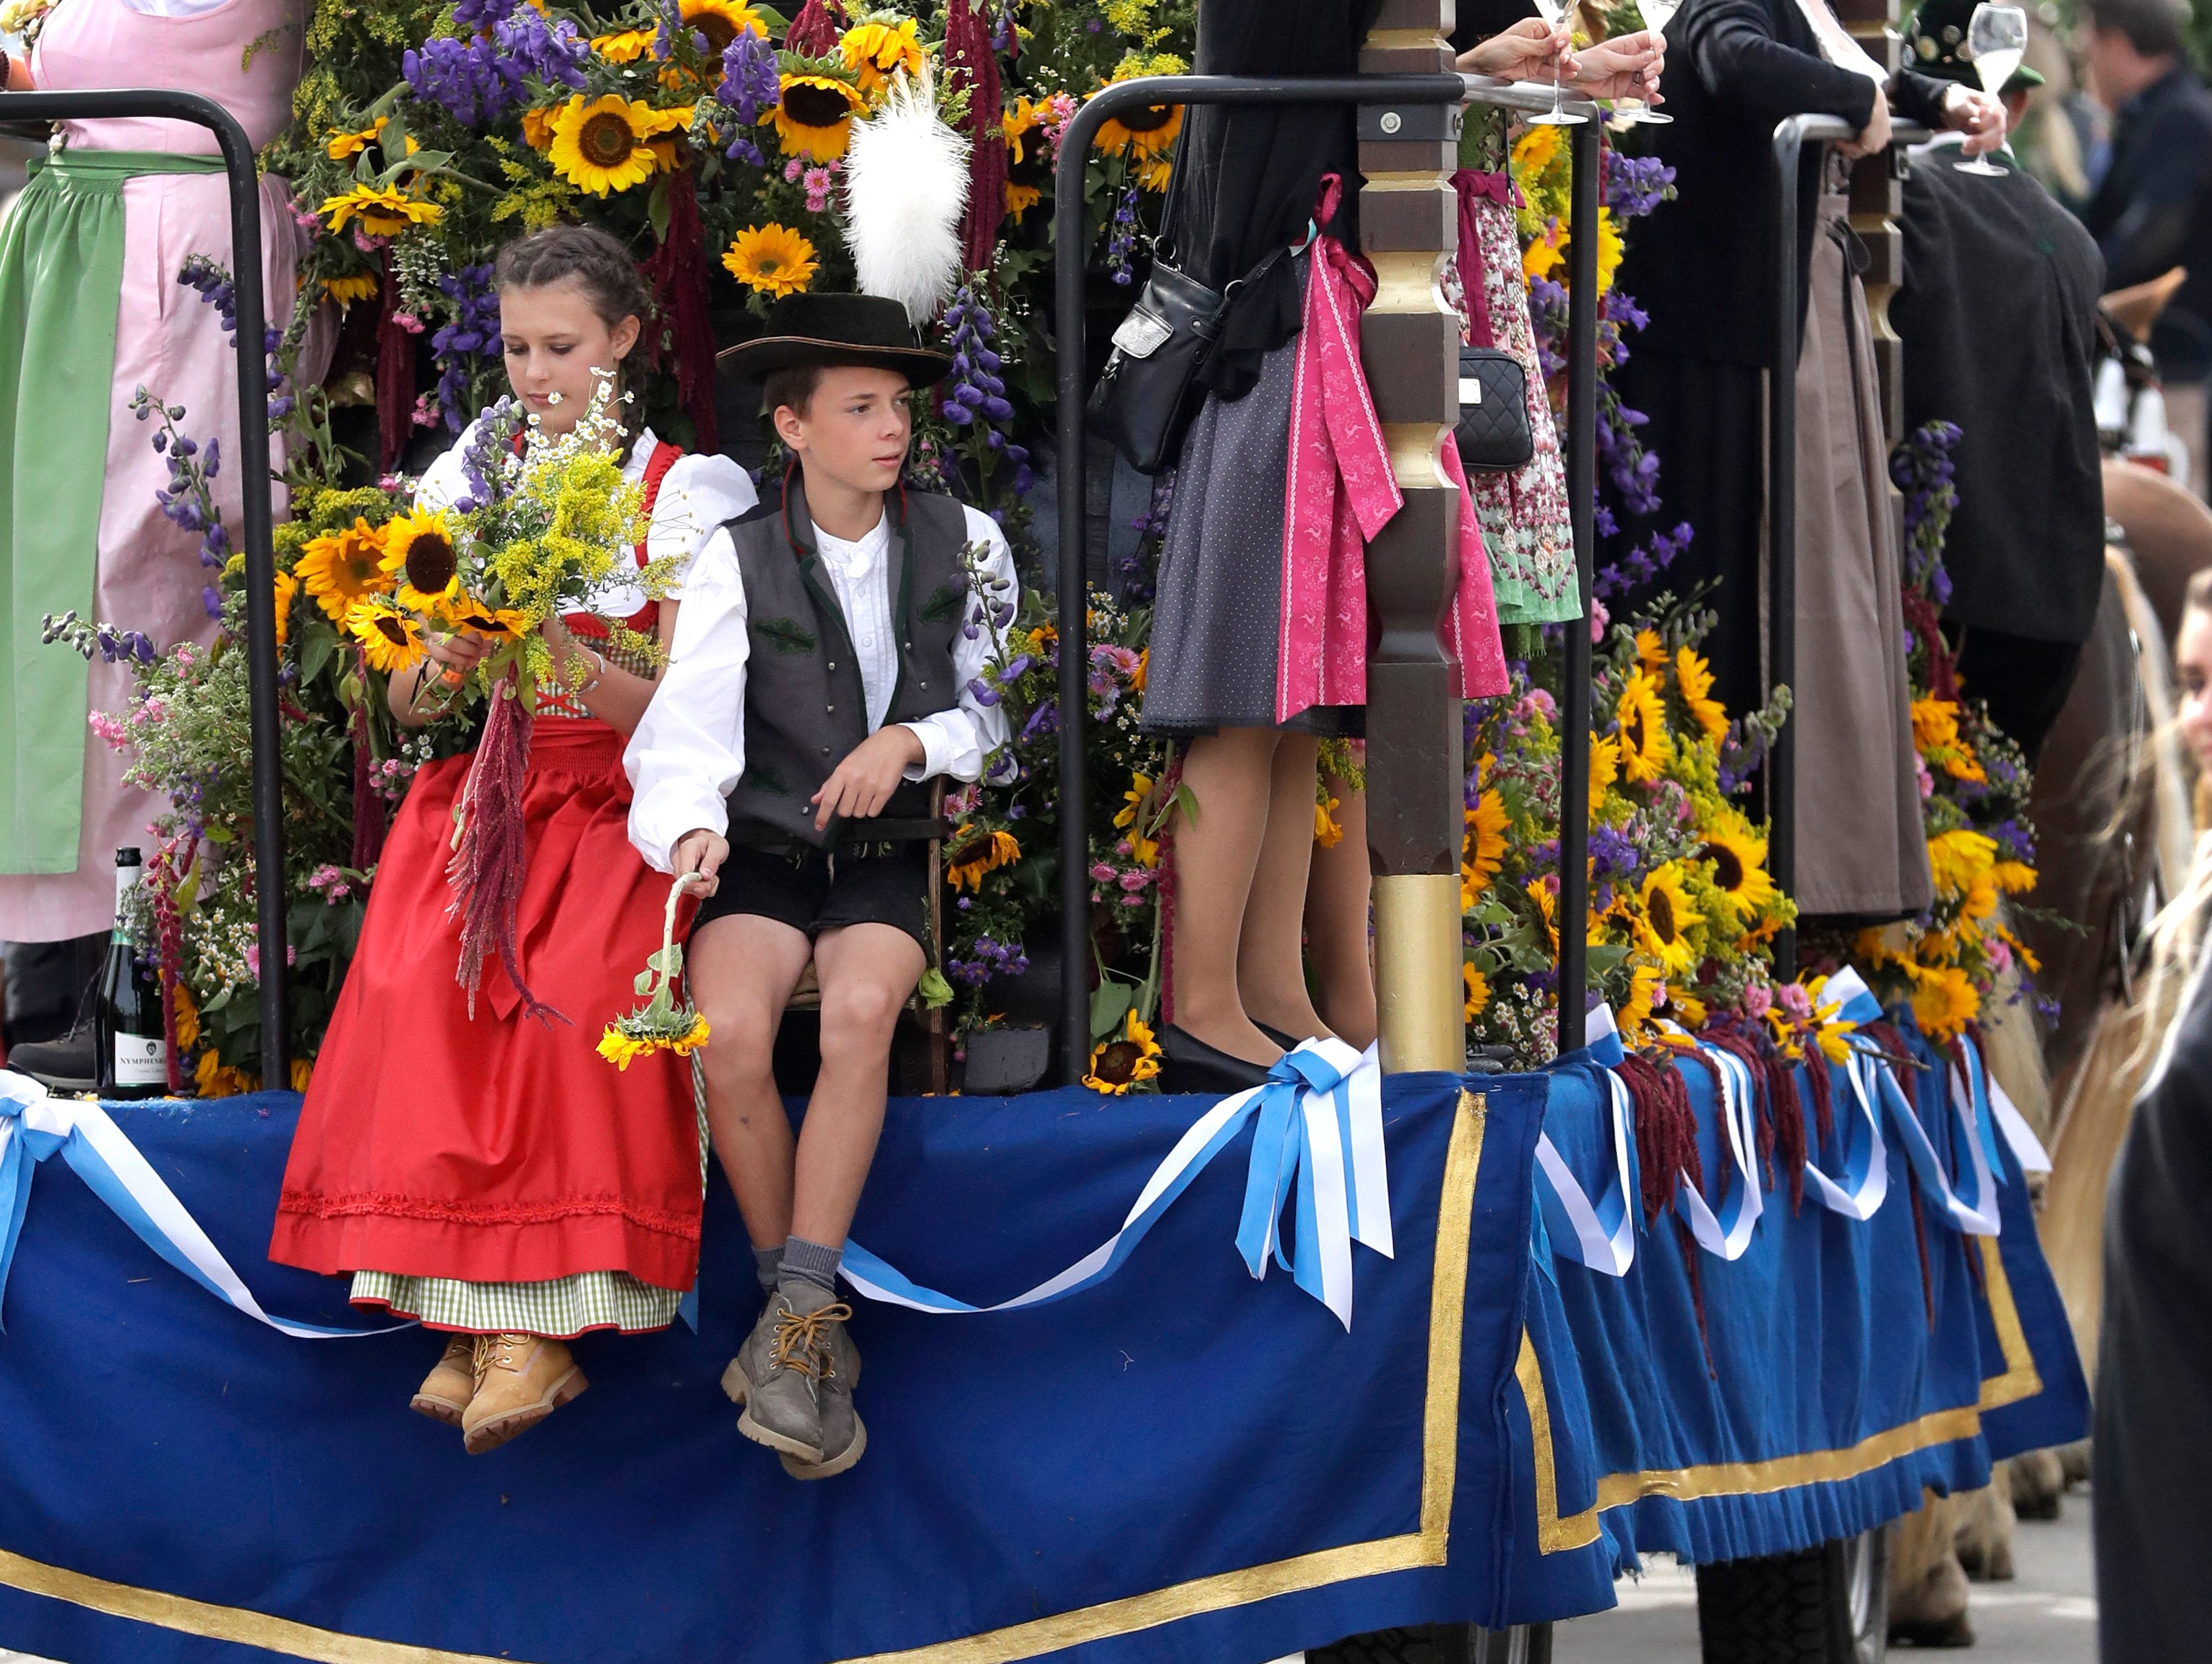 A girl and a boy sit on a wain during a parade as part of the opening of the Oktoberfest.